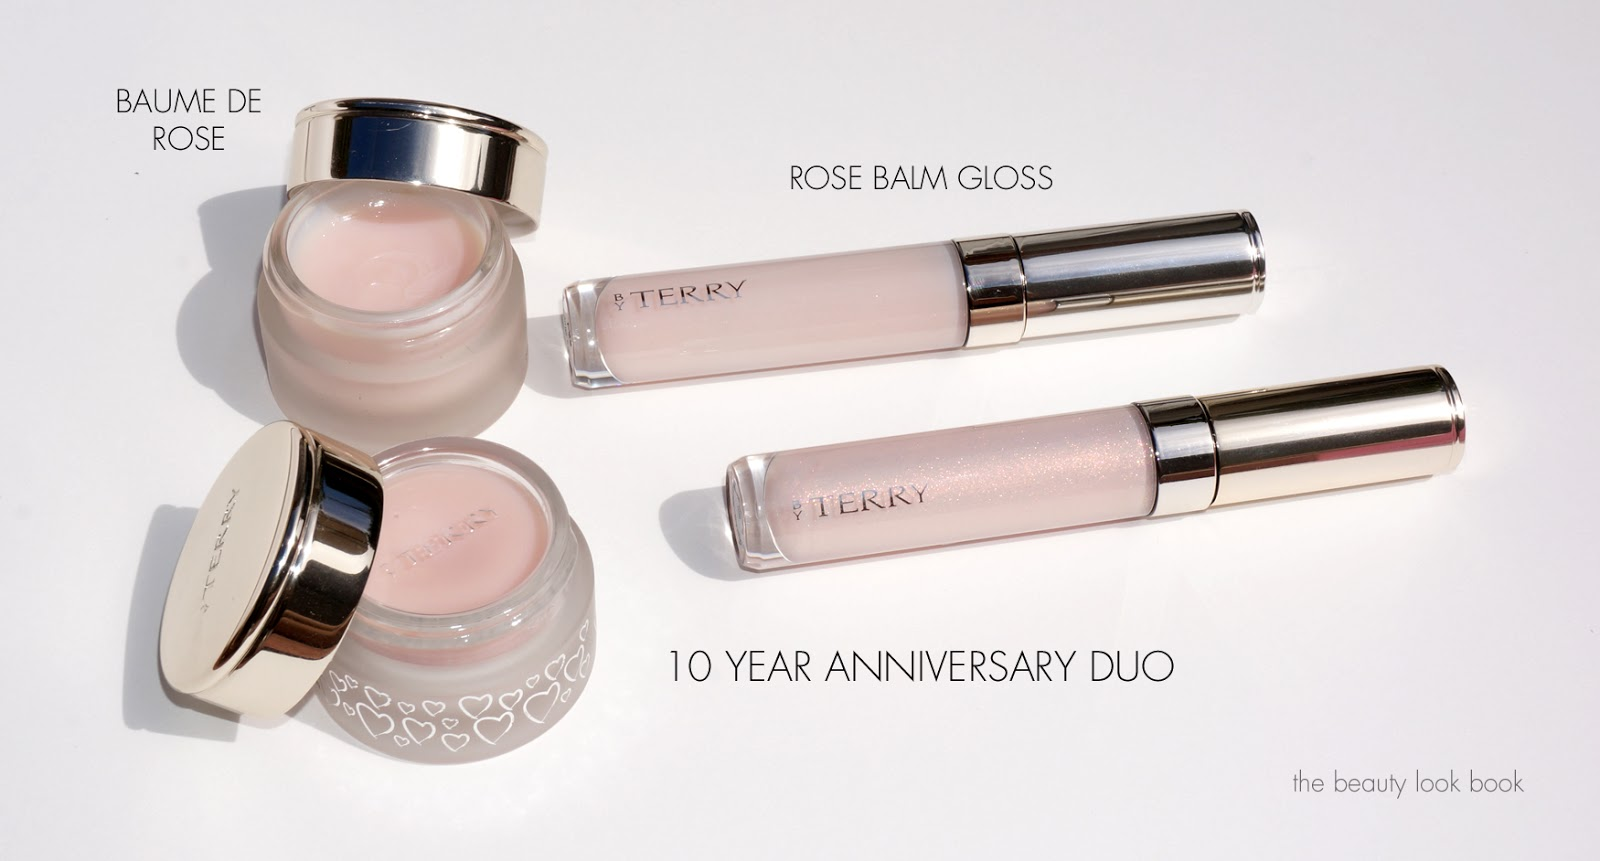 by terry baume de rose gloss